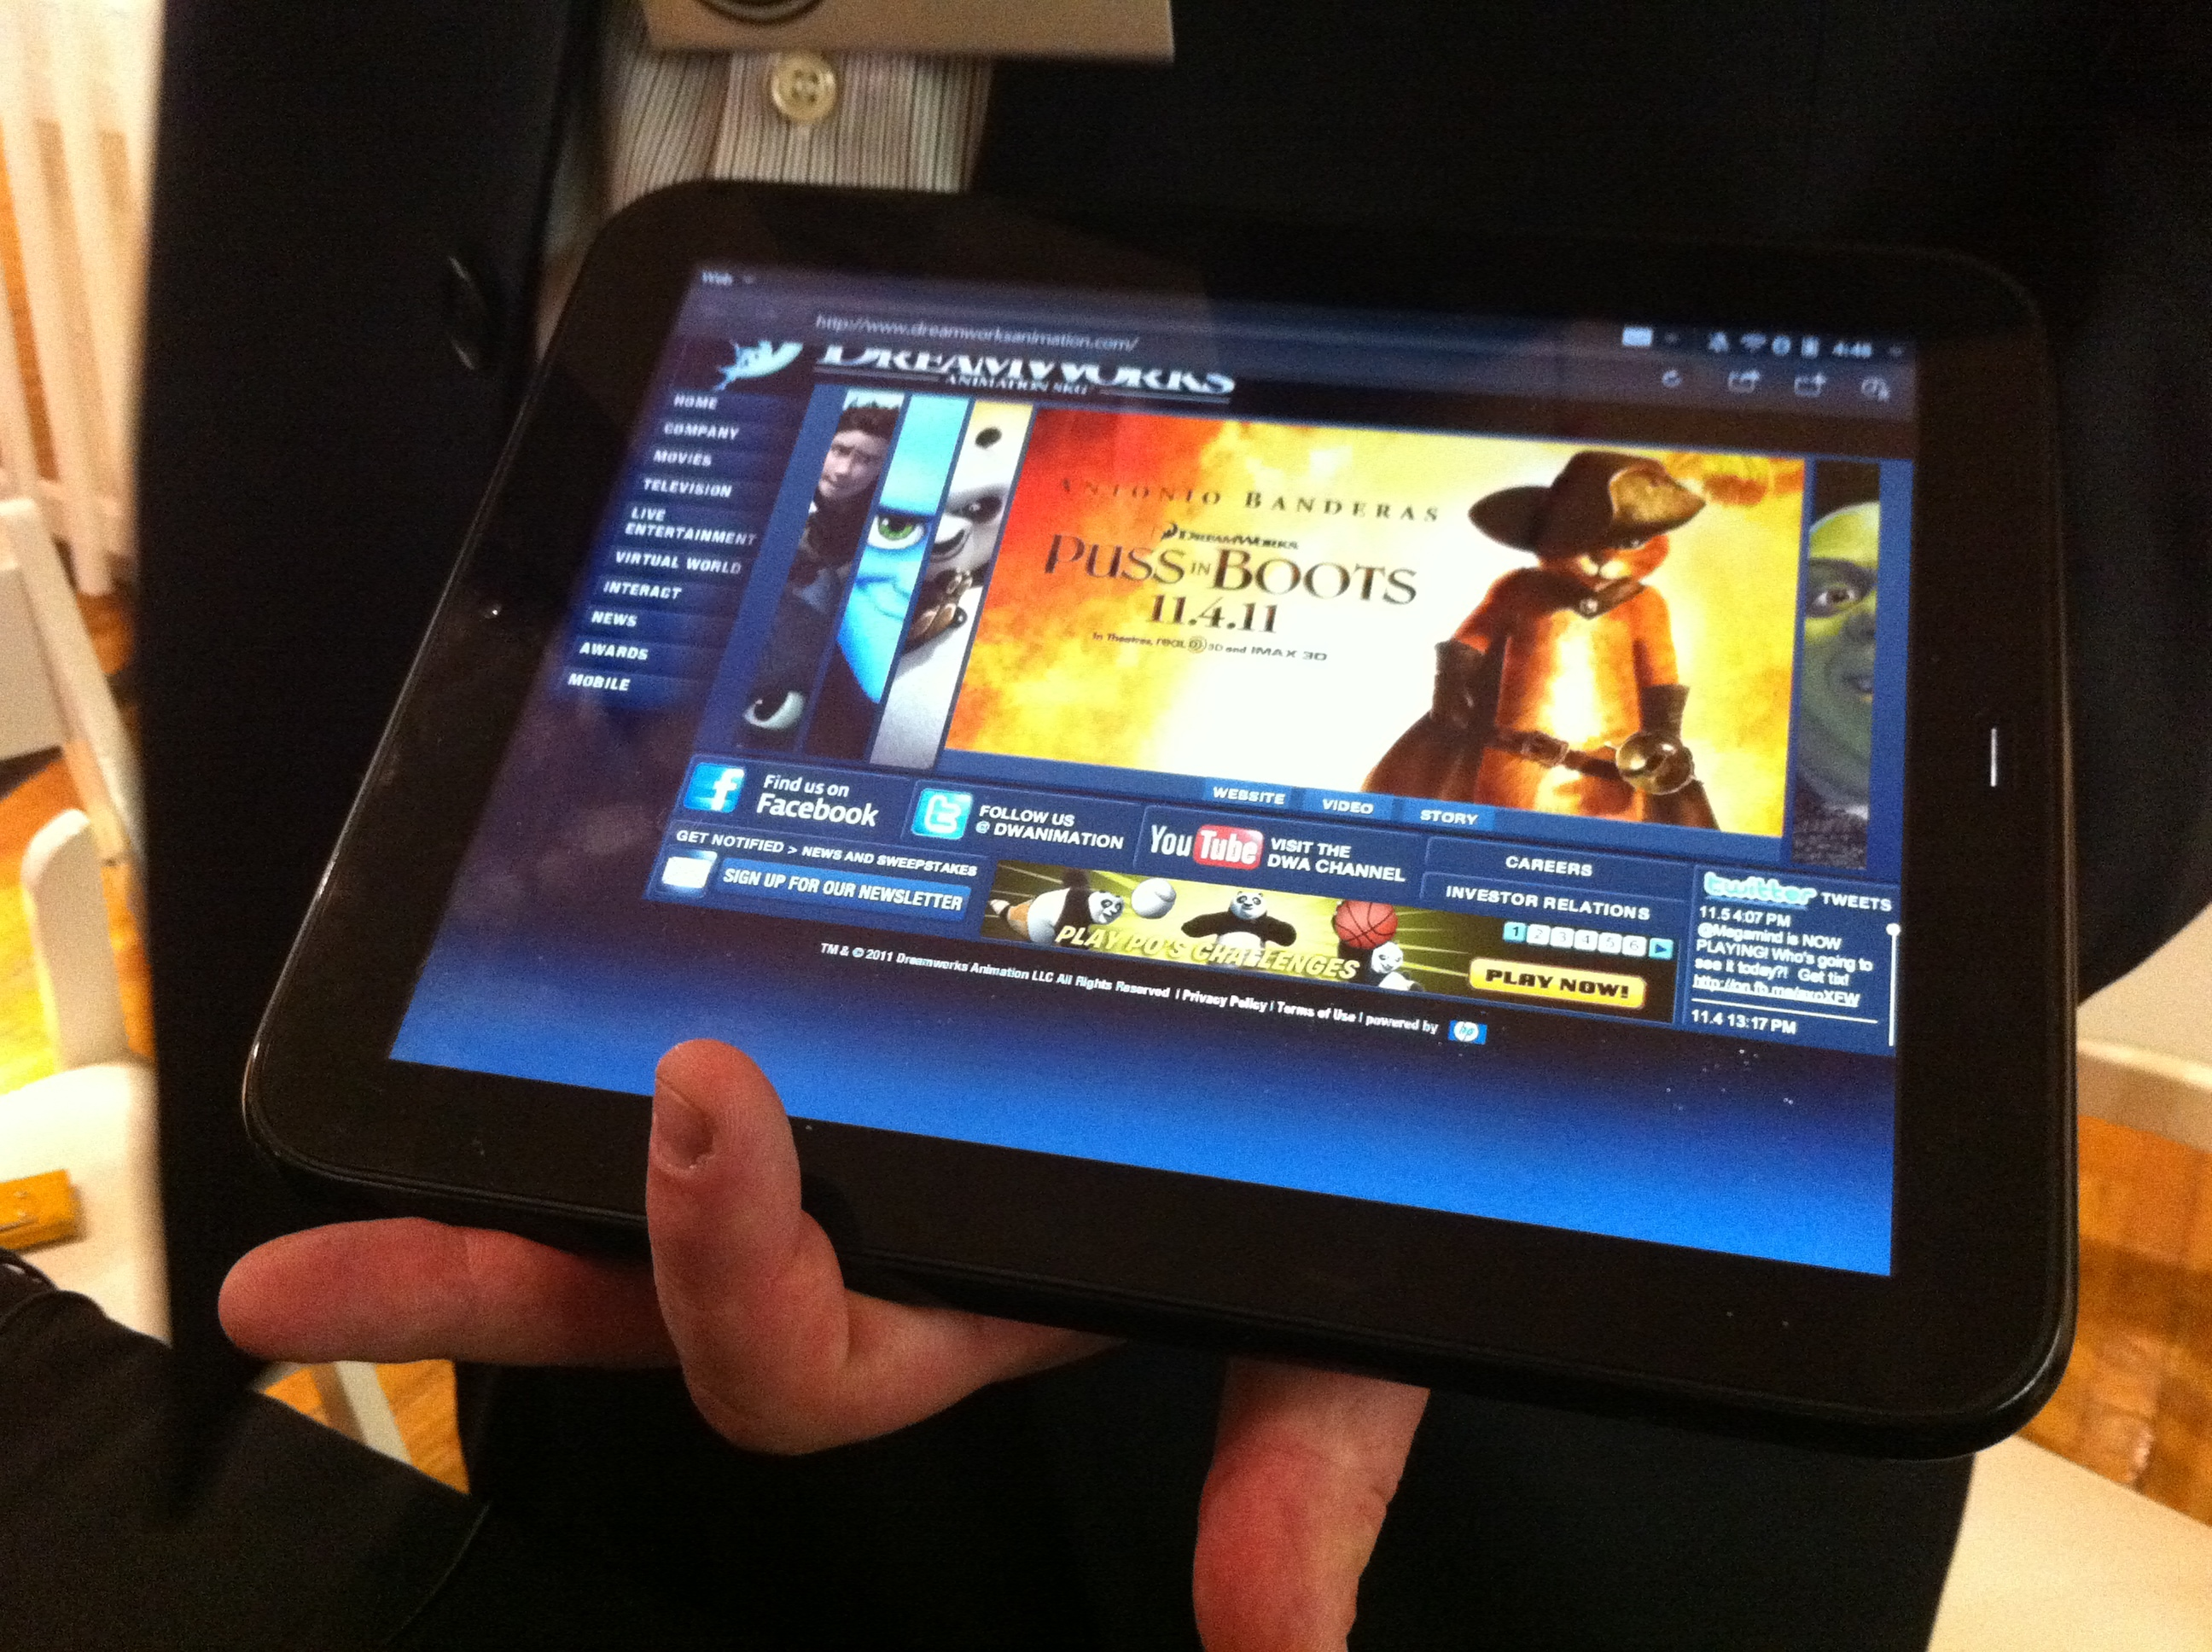 The HP TouchPad, demoing a Flash Web site for Dreamworks.